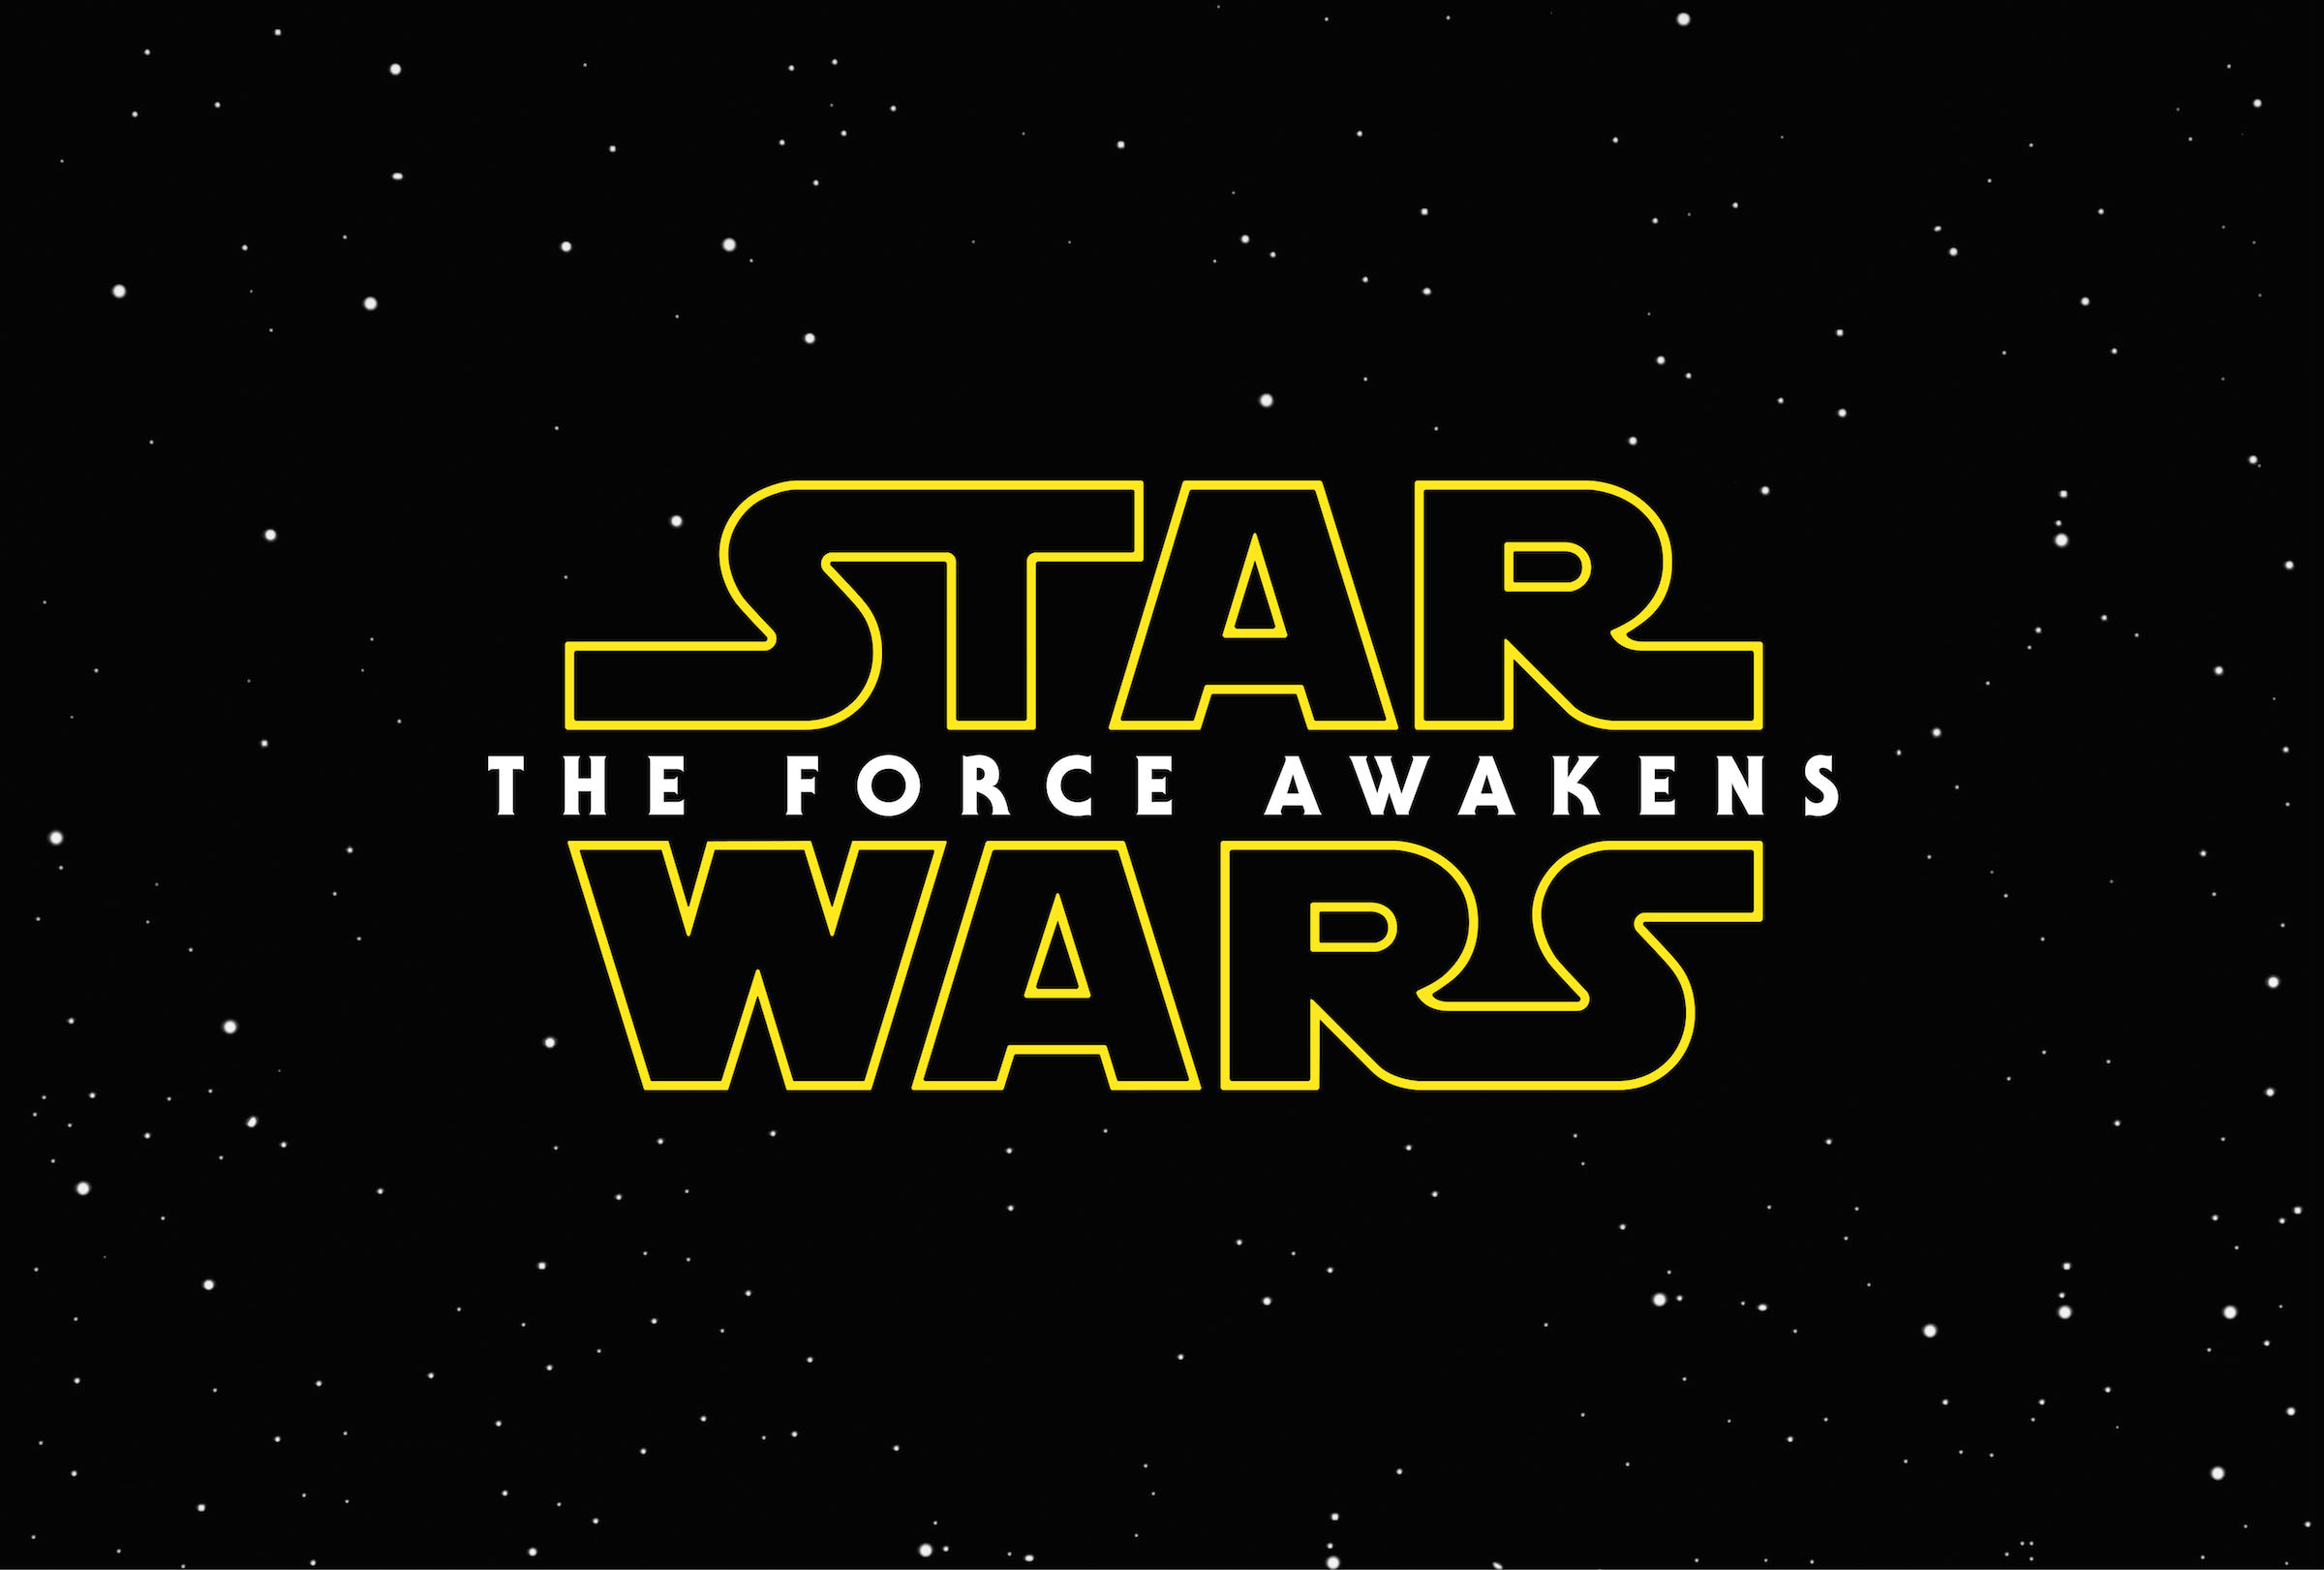 Star Wars: The Force Awakens Smashes US Box Office Records Star Wars The Force Awakens 1